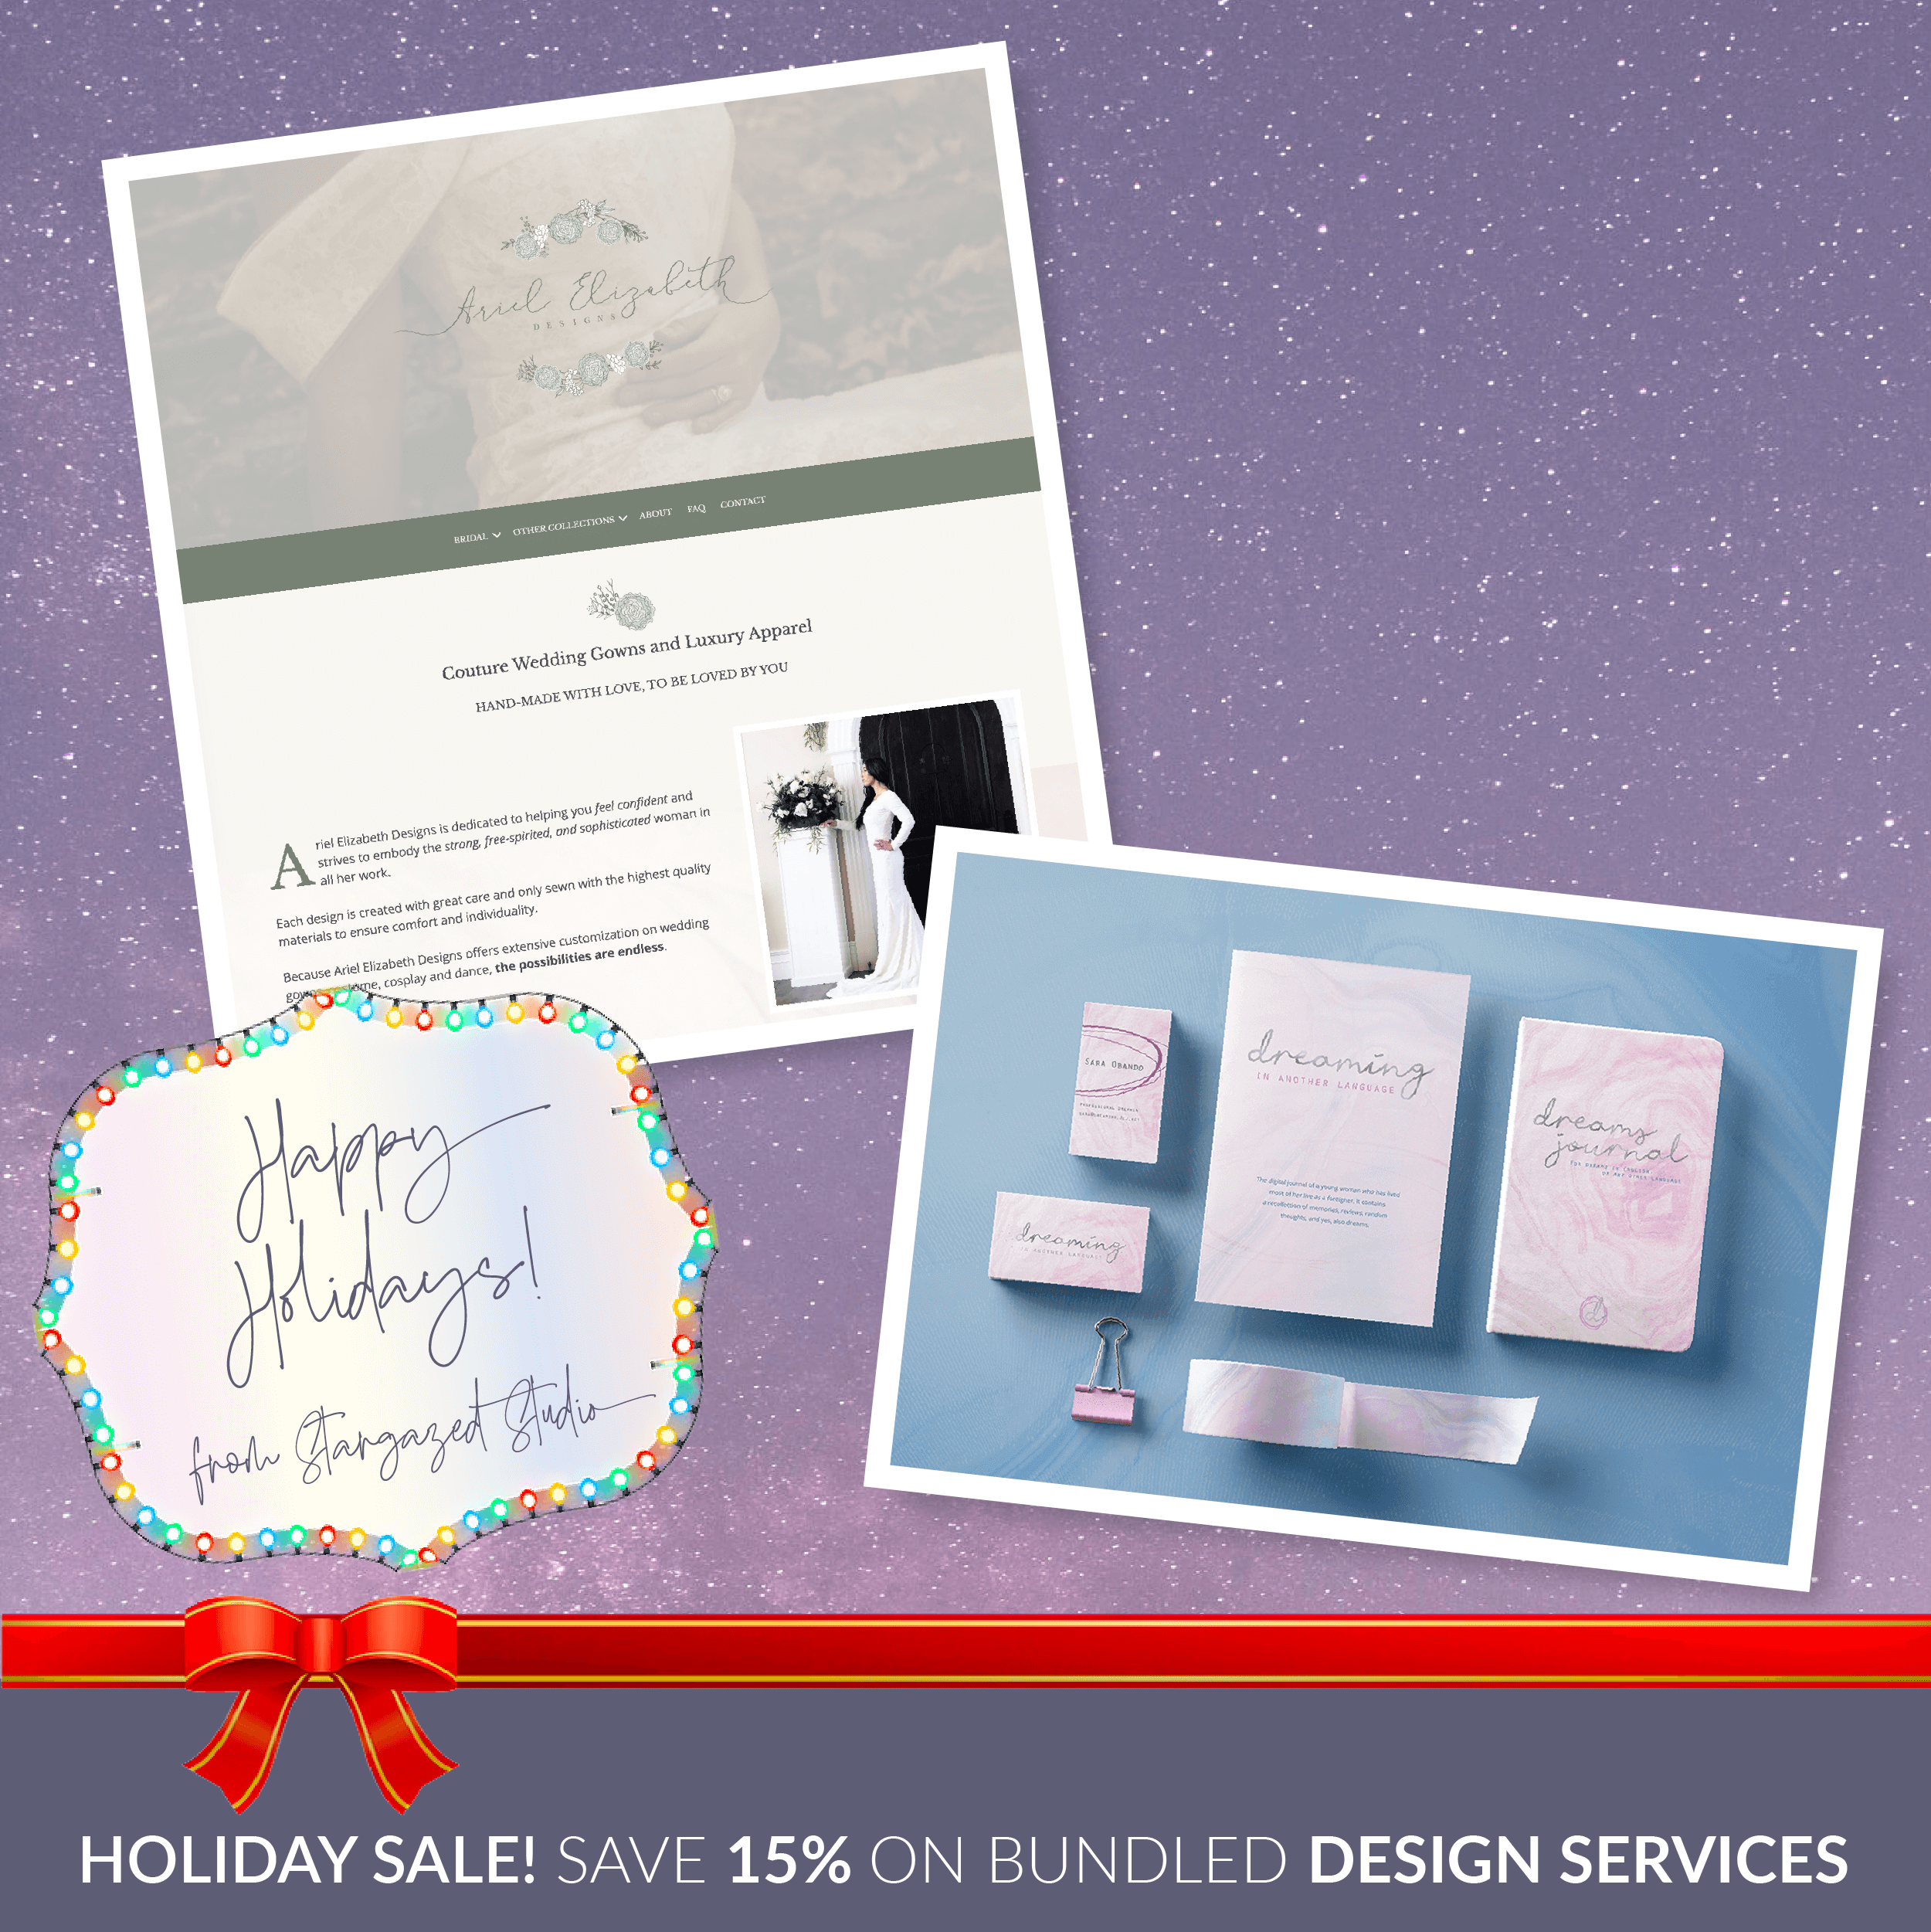 Happy Holidays from Stargazed Studio! Holiday Sale! Save 15% on bundled design services. Picture above are the brand and web design we did for Ariel Elizabeth Designs, and the branding and stationery we designed for Dreaming in Another Language.